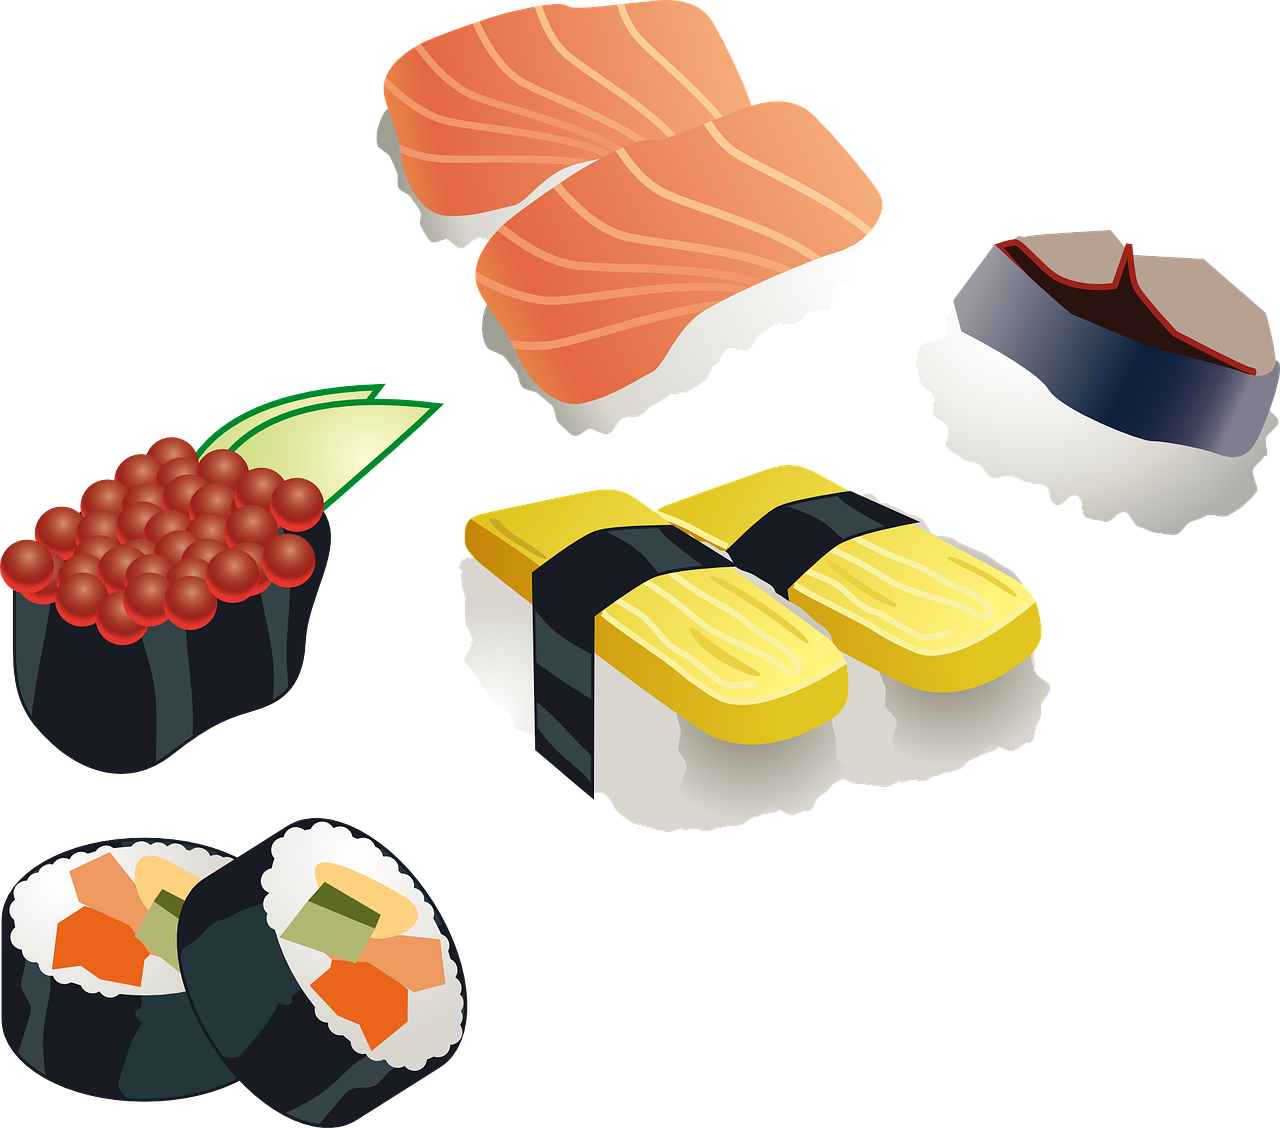 sushi,sushi roll,japanese,food,sea food,fish,rice,vinegared,seafood,oriental,cuisine,eat,wrap,fruits,free vector graphics,free pictures, free photos, free images, royalty free, free illustrations, public domain